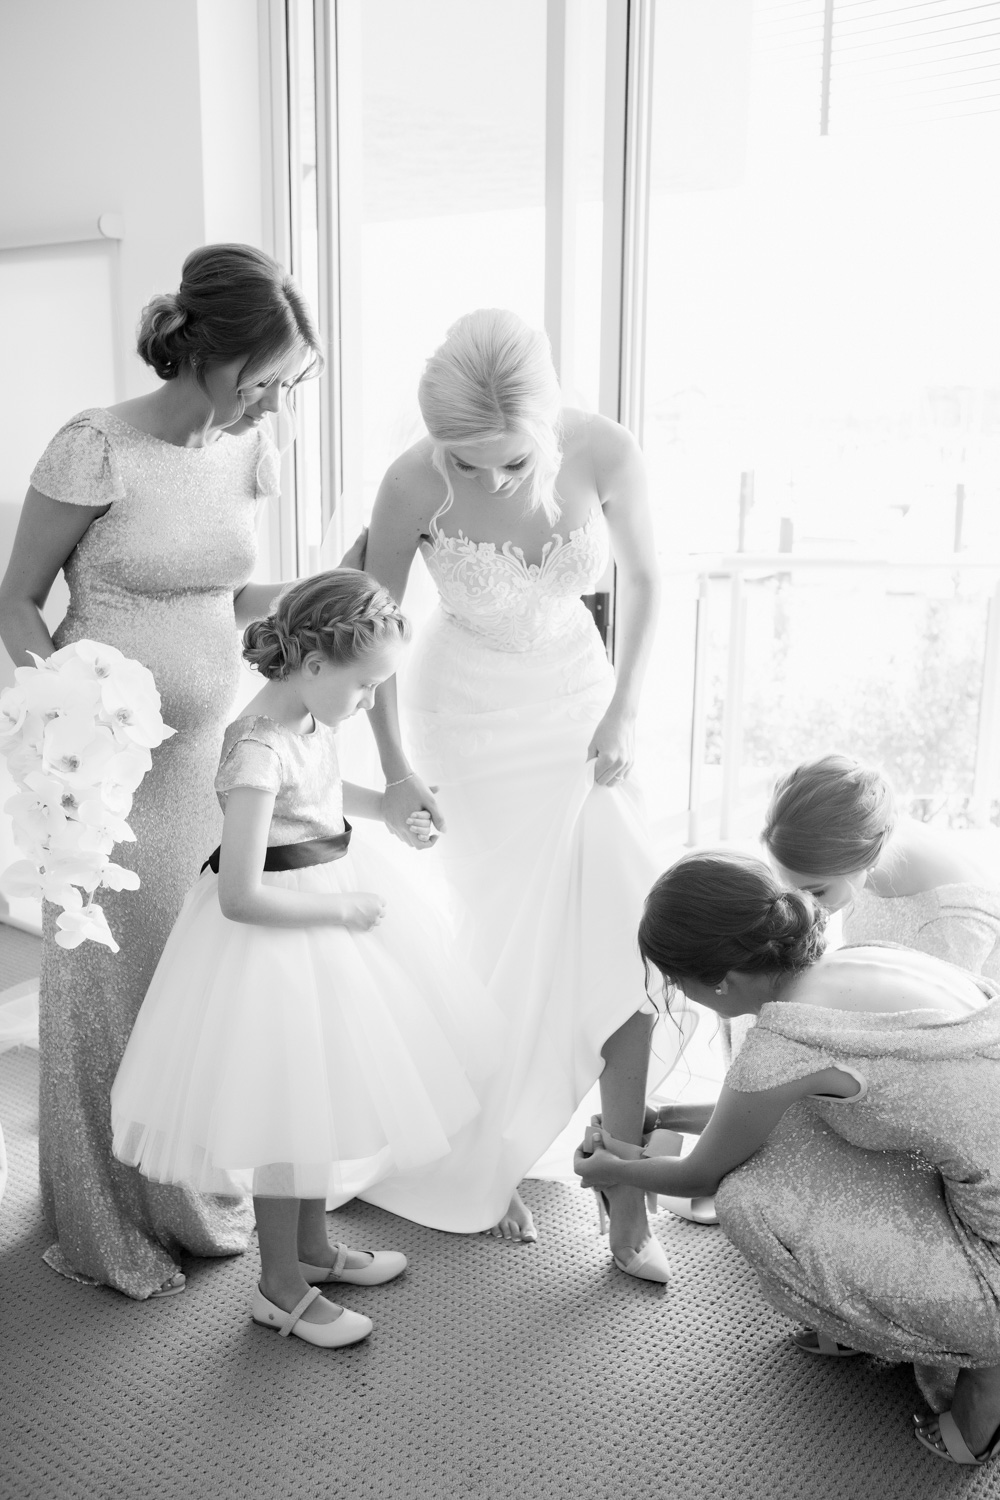 wedding-0115-shoes-dress-bridesmaids-flowergirl-dressed-brisbane.jpg